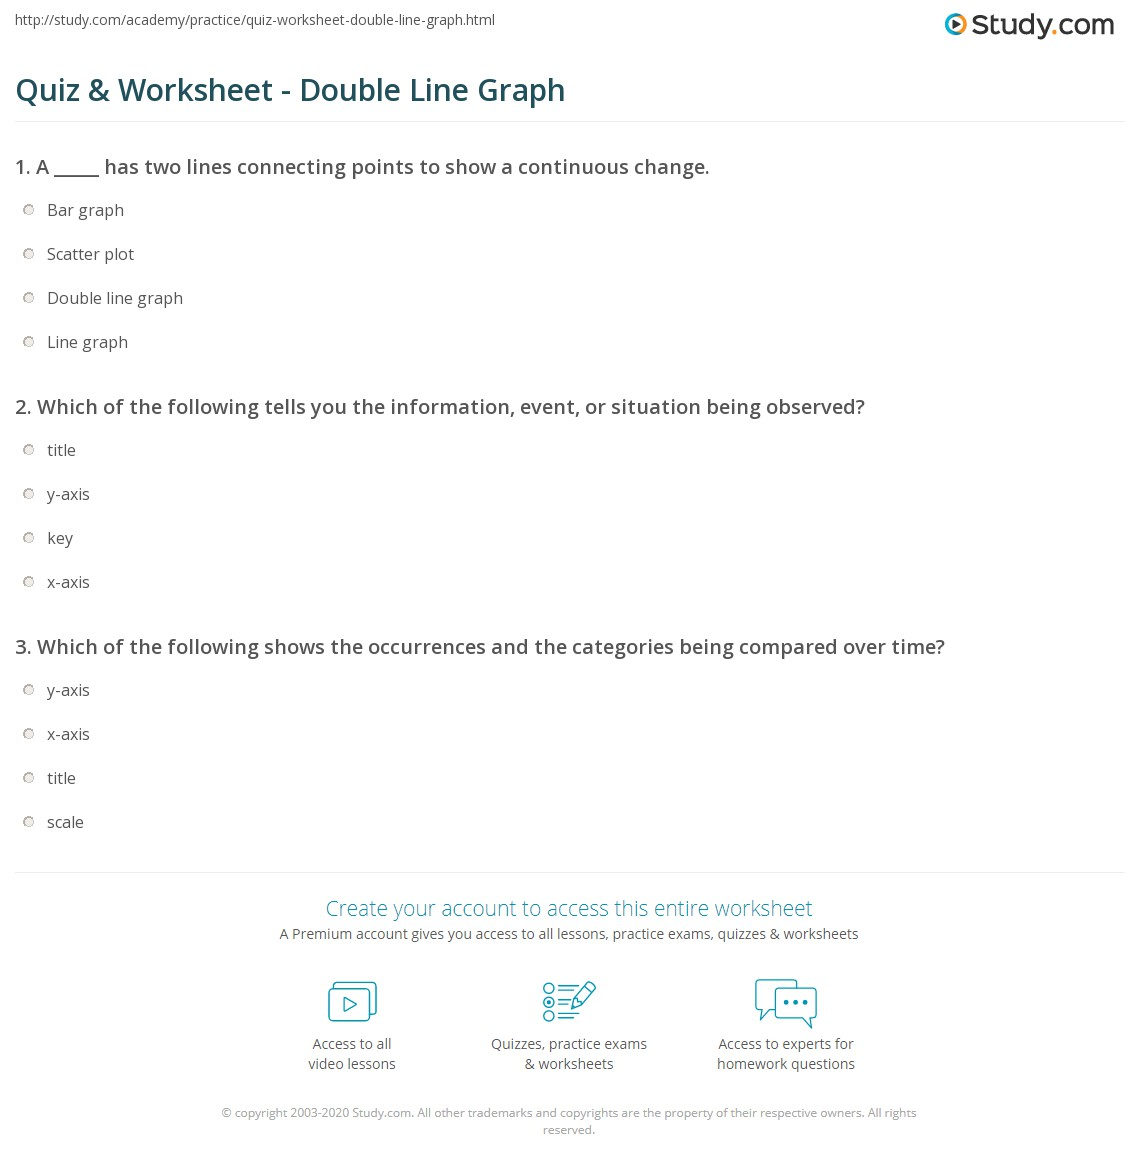 worksheet Double Line Graph Worksheets quiz worksheet double line graph study com print definition examples worksheet